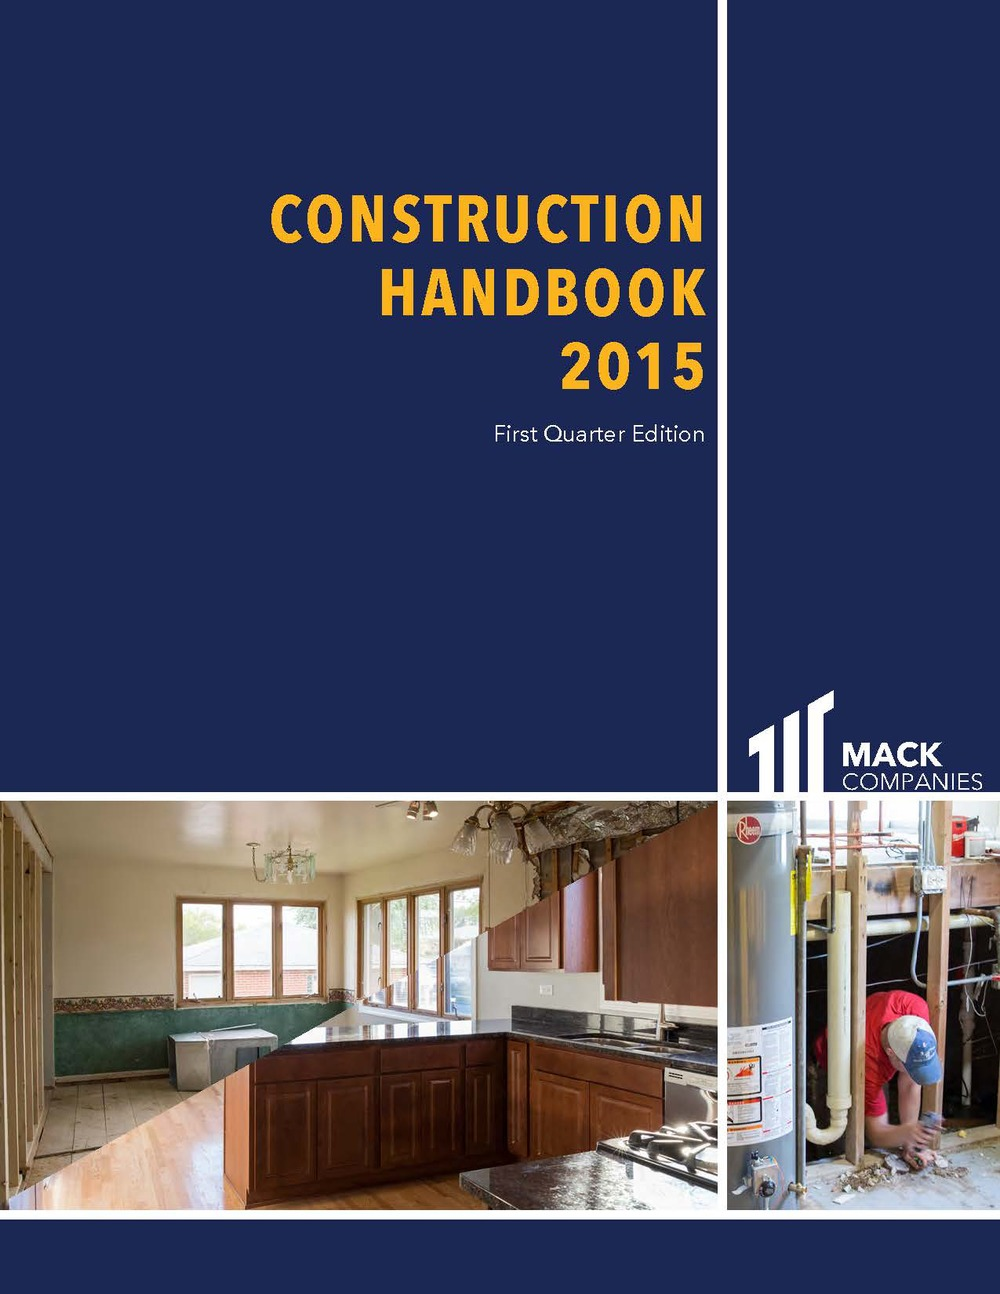 20150429_MACKCompanies_Construction_Handbook_smaller_Page_01.jpg